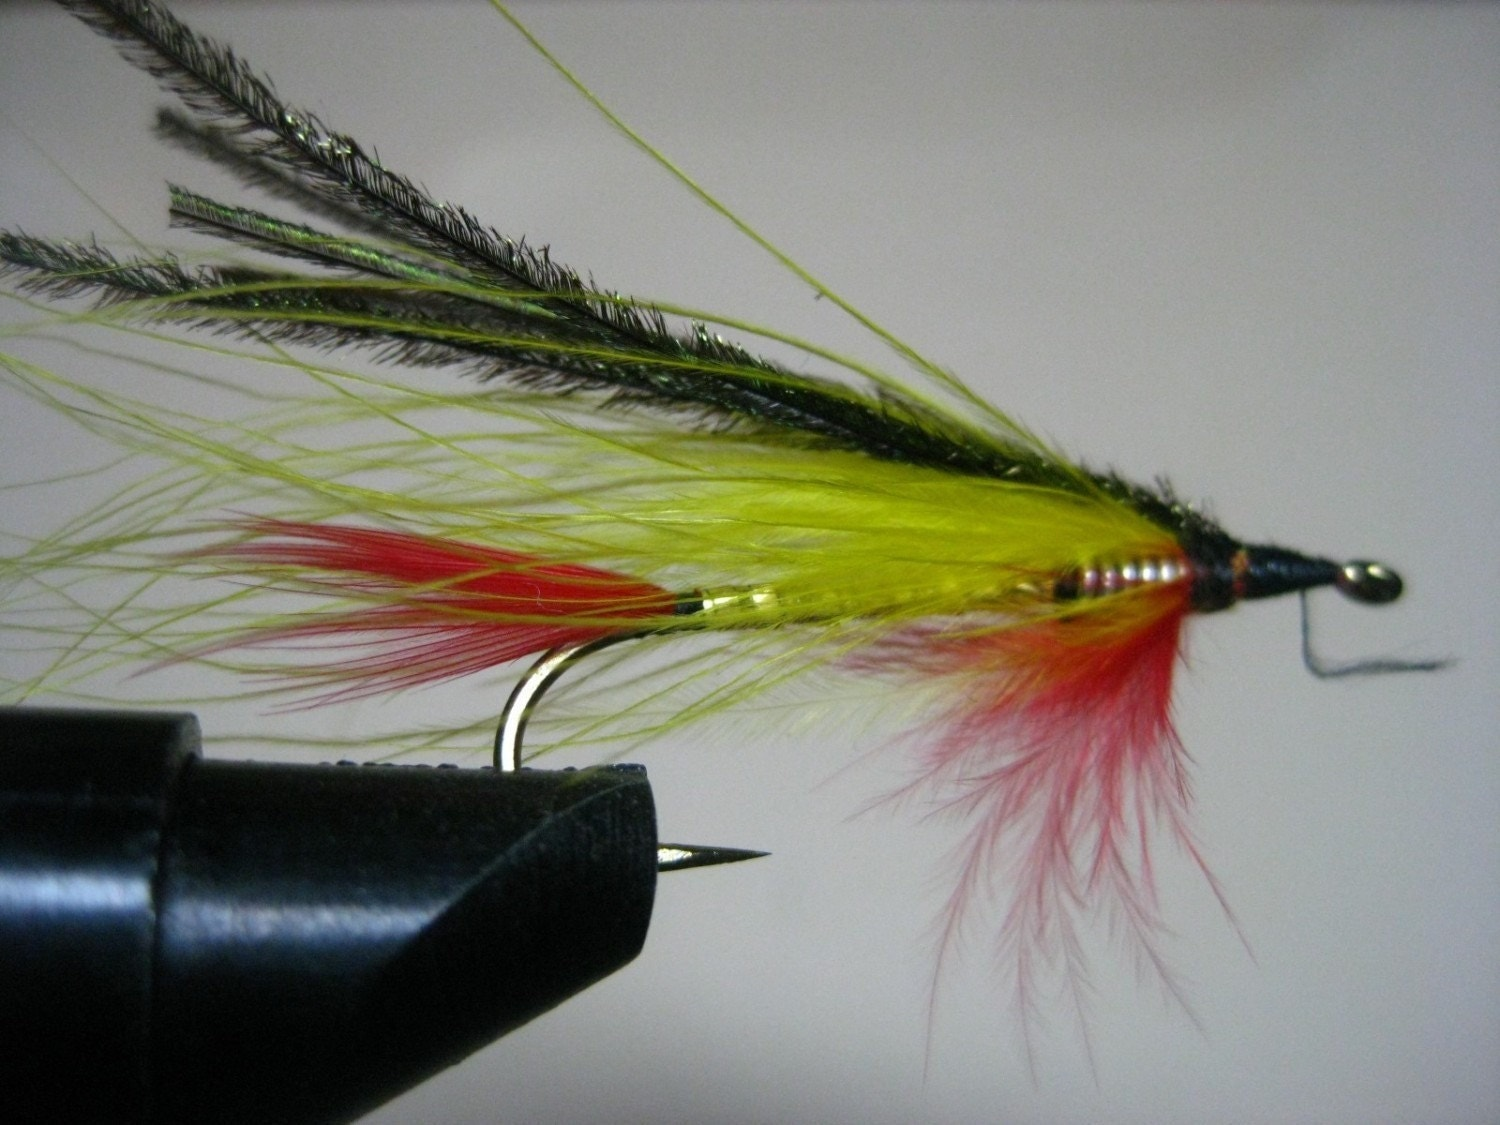 Streamer fly fishing lure handmade marabou feathers by ...